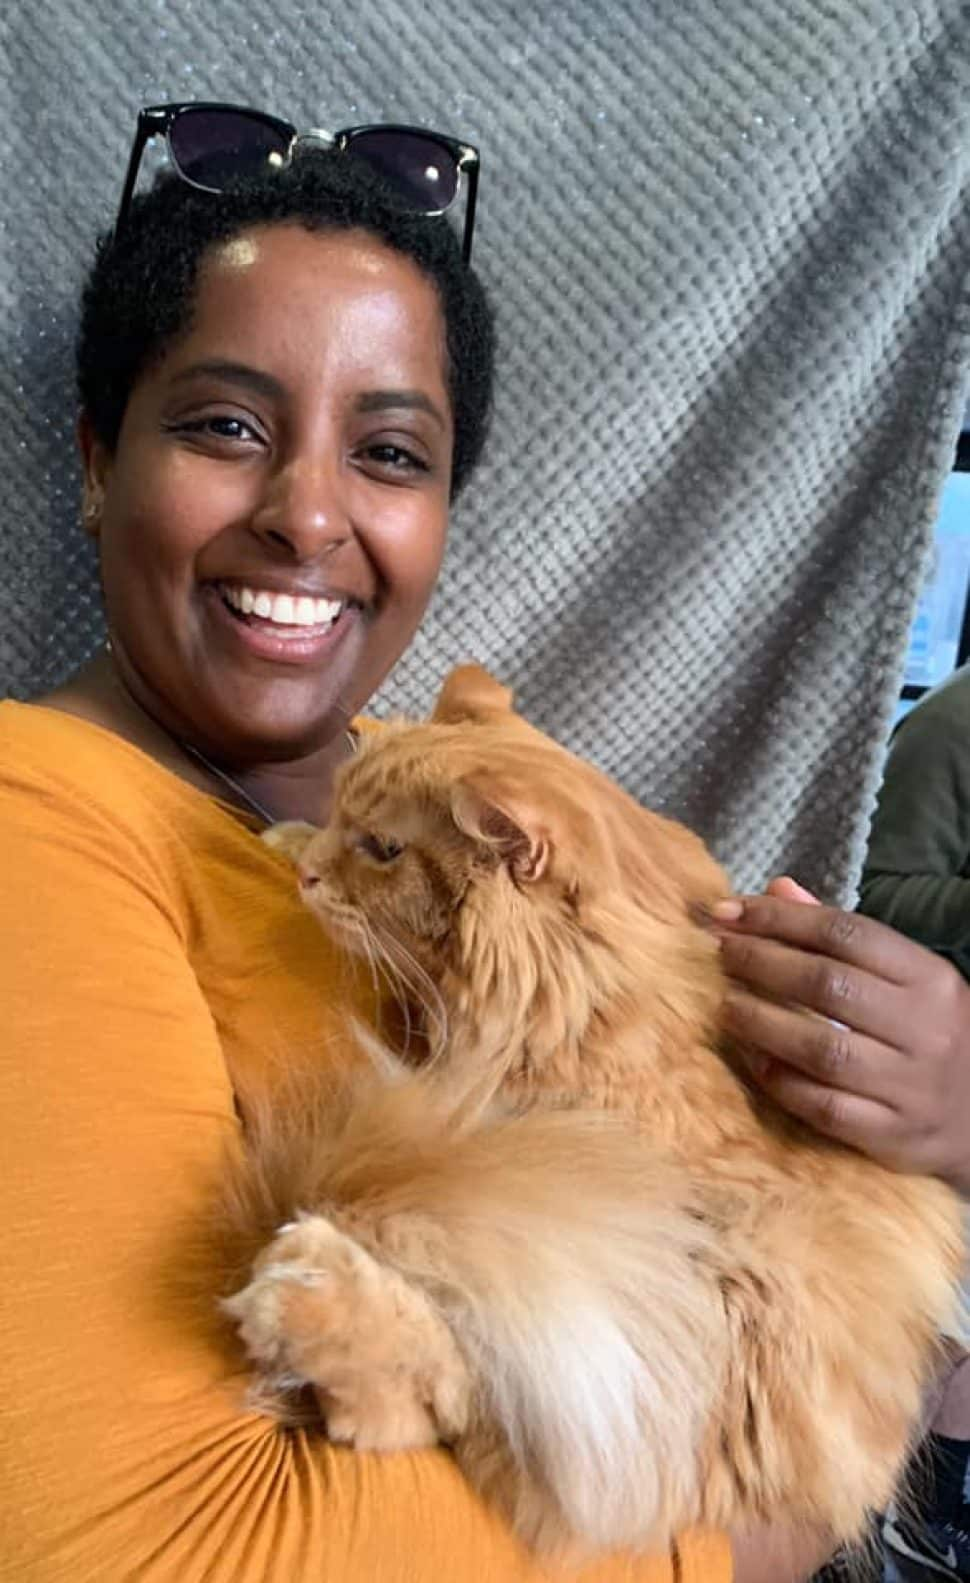 Woman with short black hair and sunglasses on top of her head, wearing a bright-orange shirt, cuddles newly adopted orange cat.